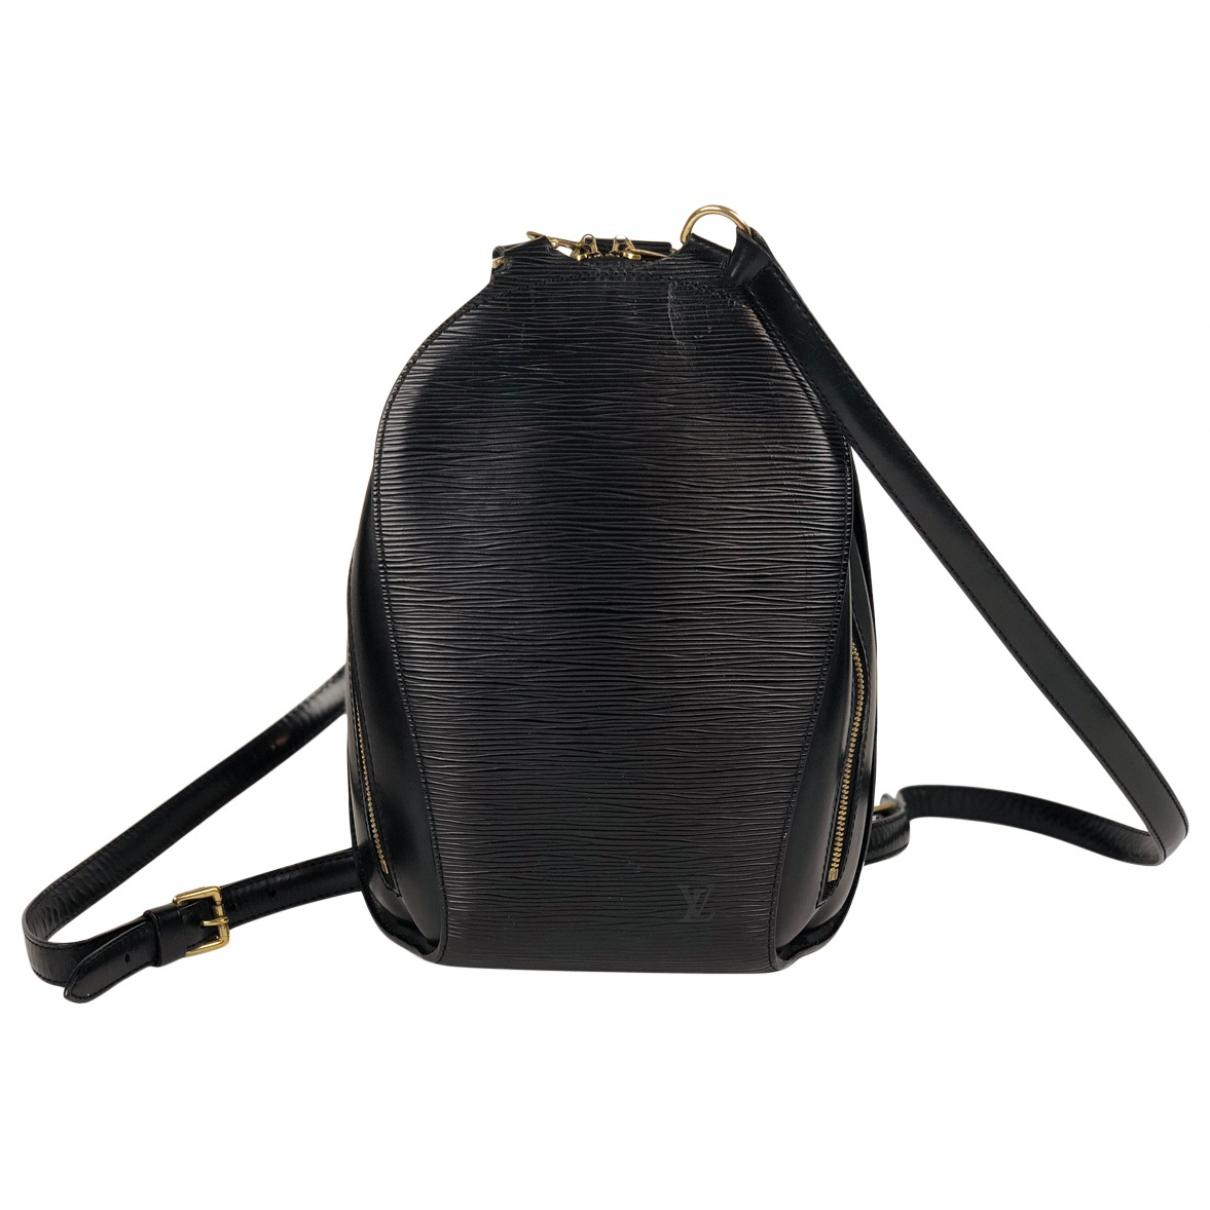 992b82923ab Lyst louis vuitton pre owned leather backpack in black jpg 1210x1210 Black  louis vuitton backpack